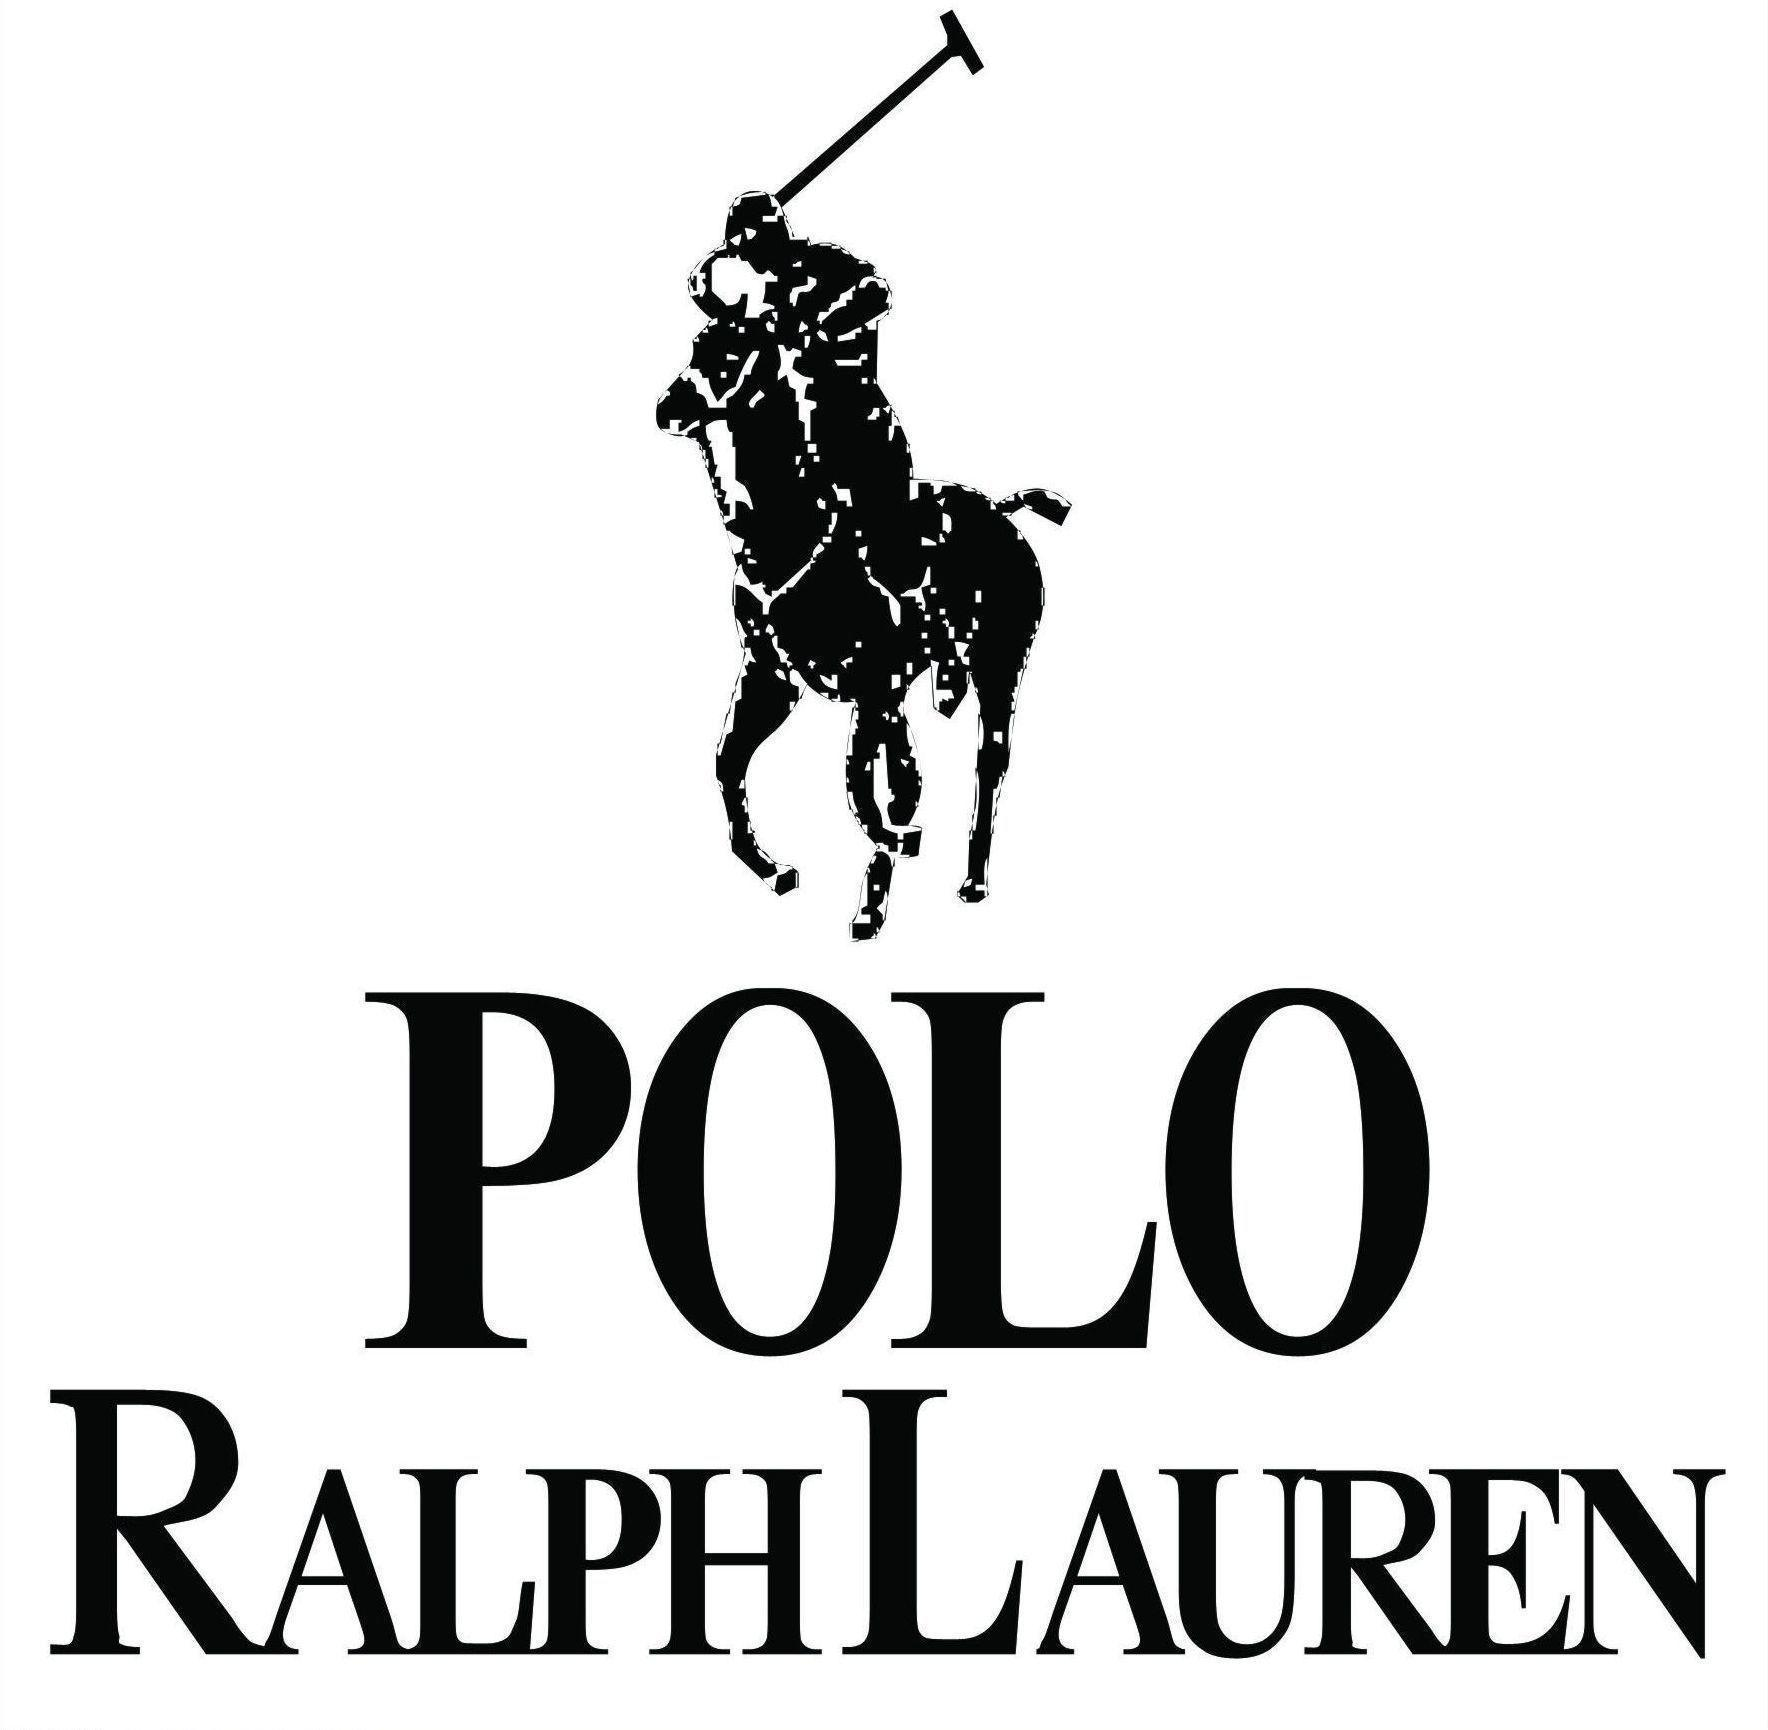 Image For > Ralph Lauren Polo Logo Wallpapers